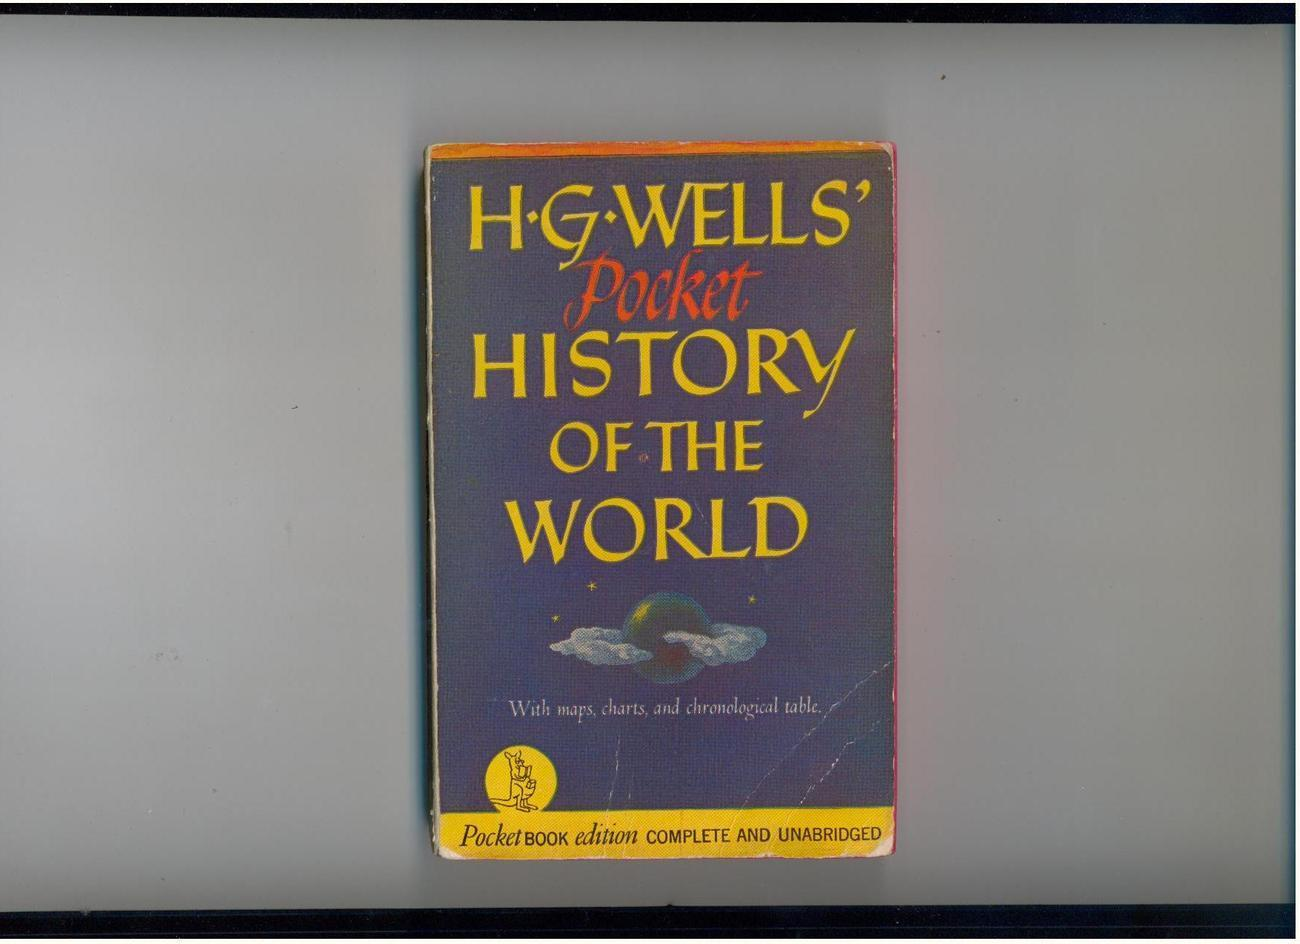 H.G. WELLS' POCKET HISTORY OF THE WORLD - 1941